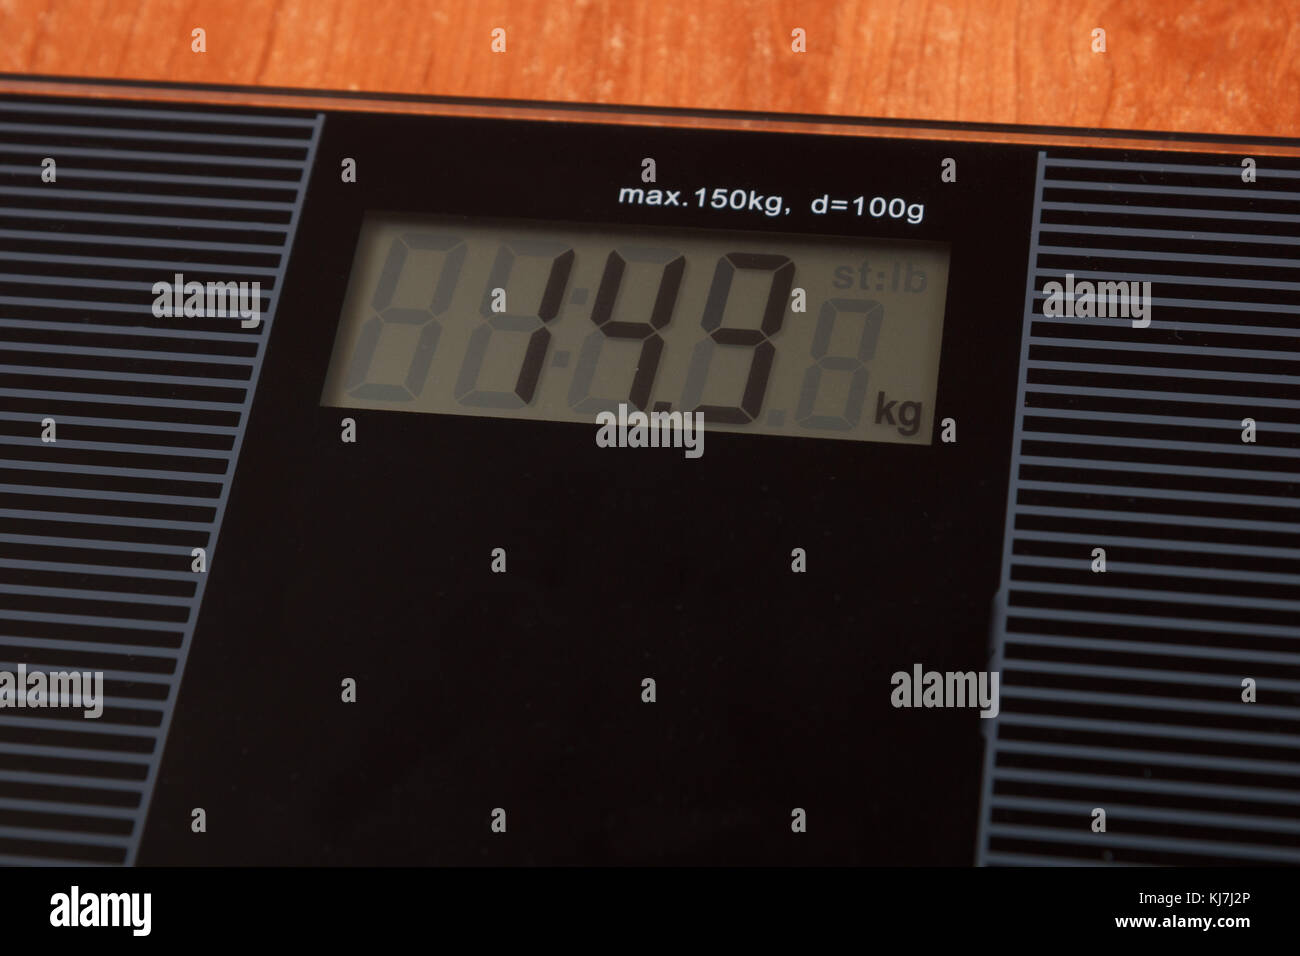 digital weight display - Stock Image